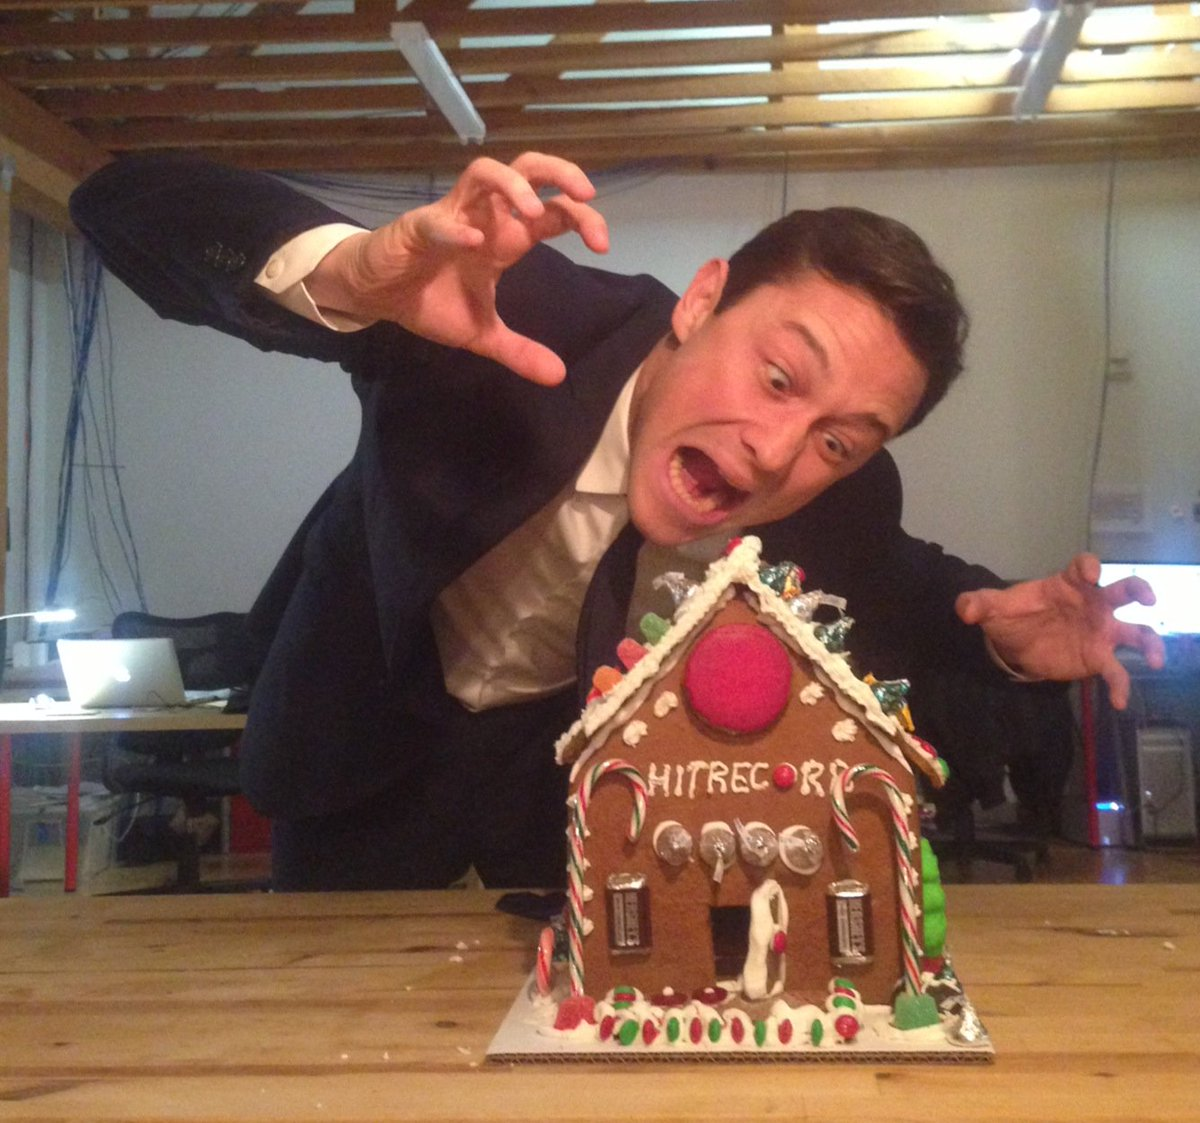 Apparently today is #NationalGingerbreadHouseDay, so here's a pic of me about to annihilate one a few years ago... https://t.co/NjjnOXg3JJ